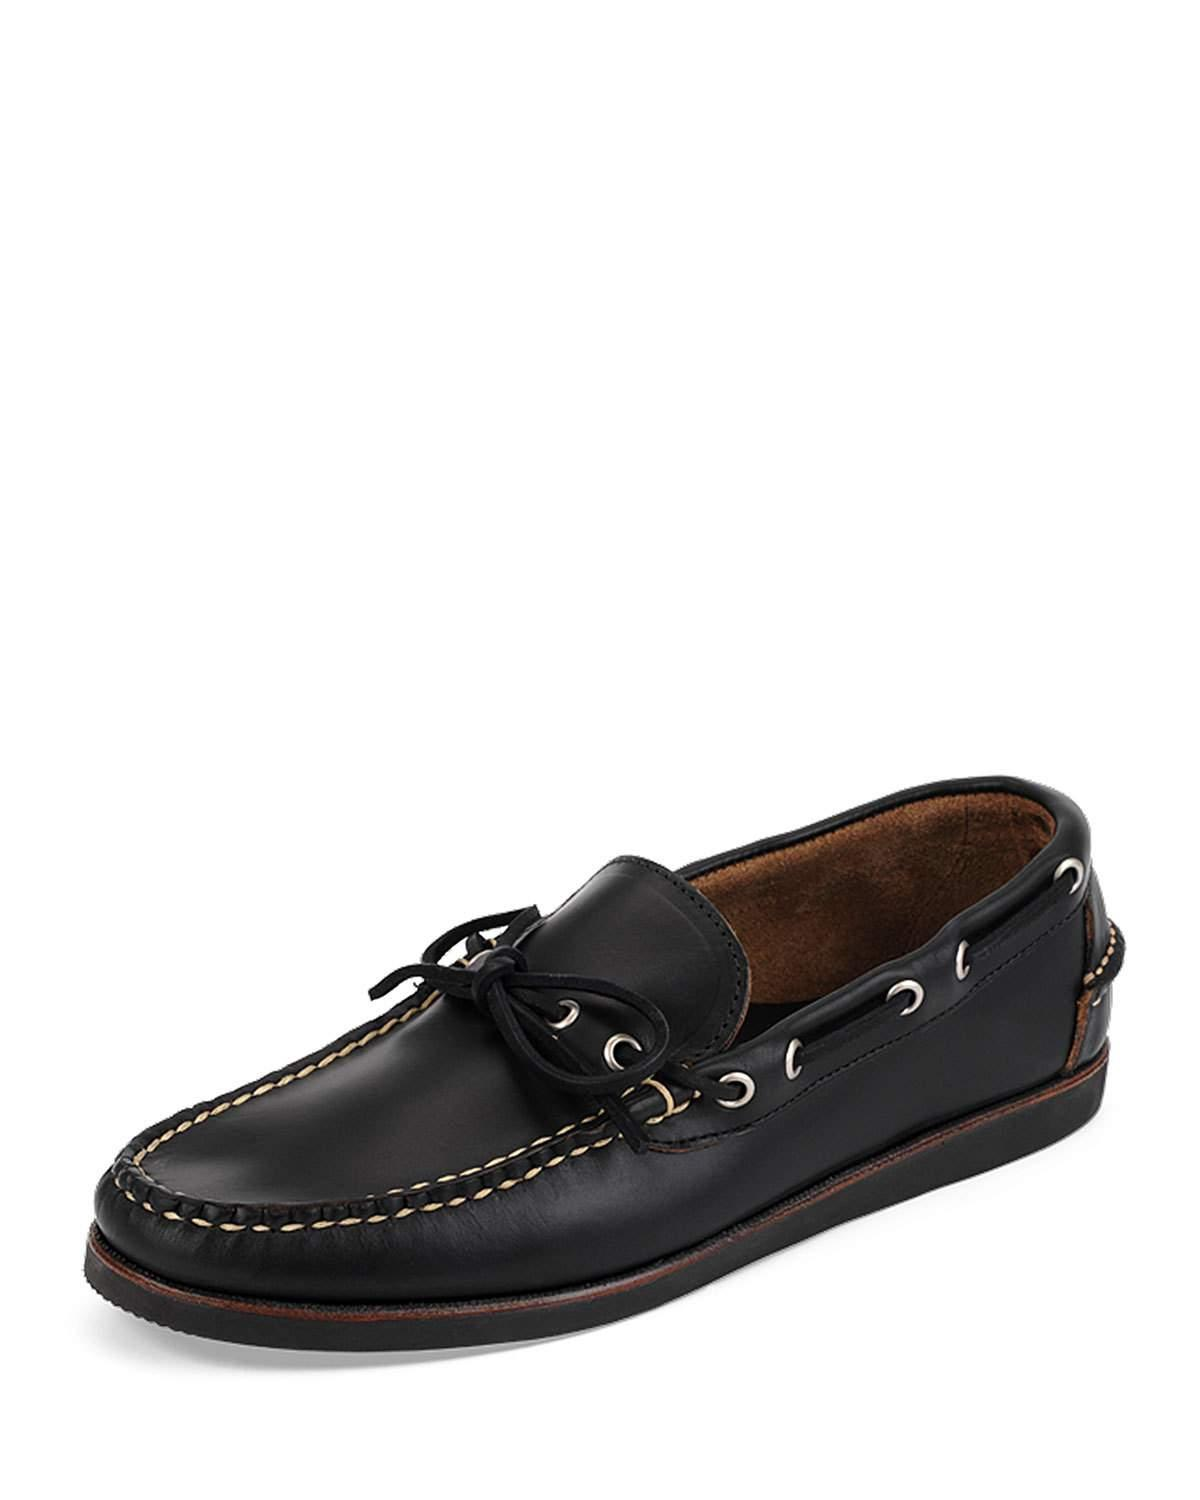 Eastland Leather Boat Shoes